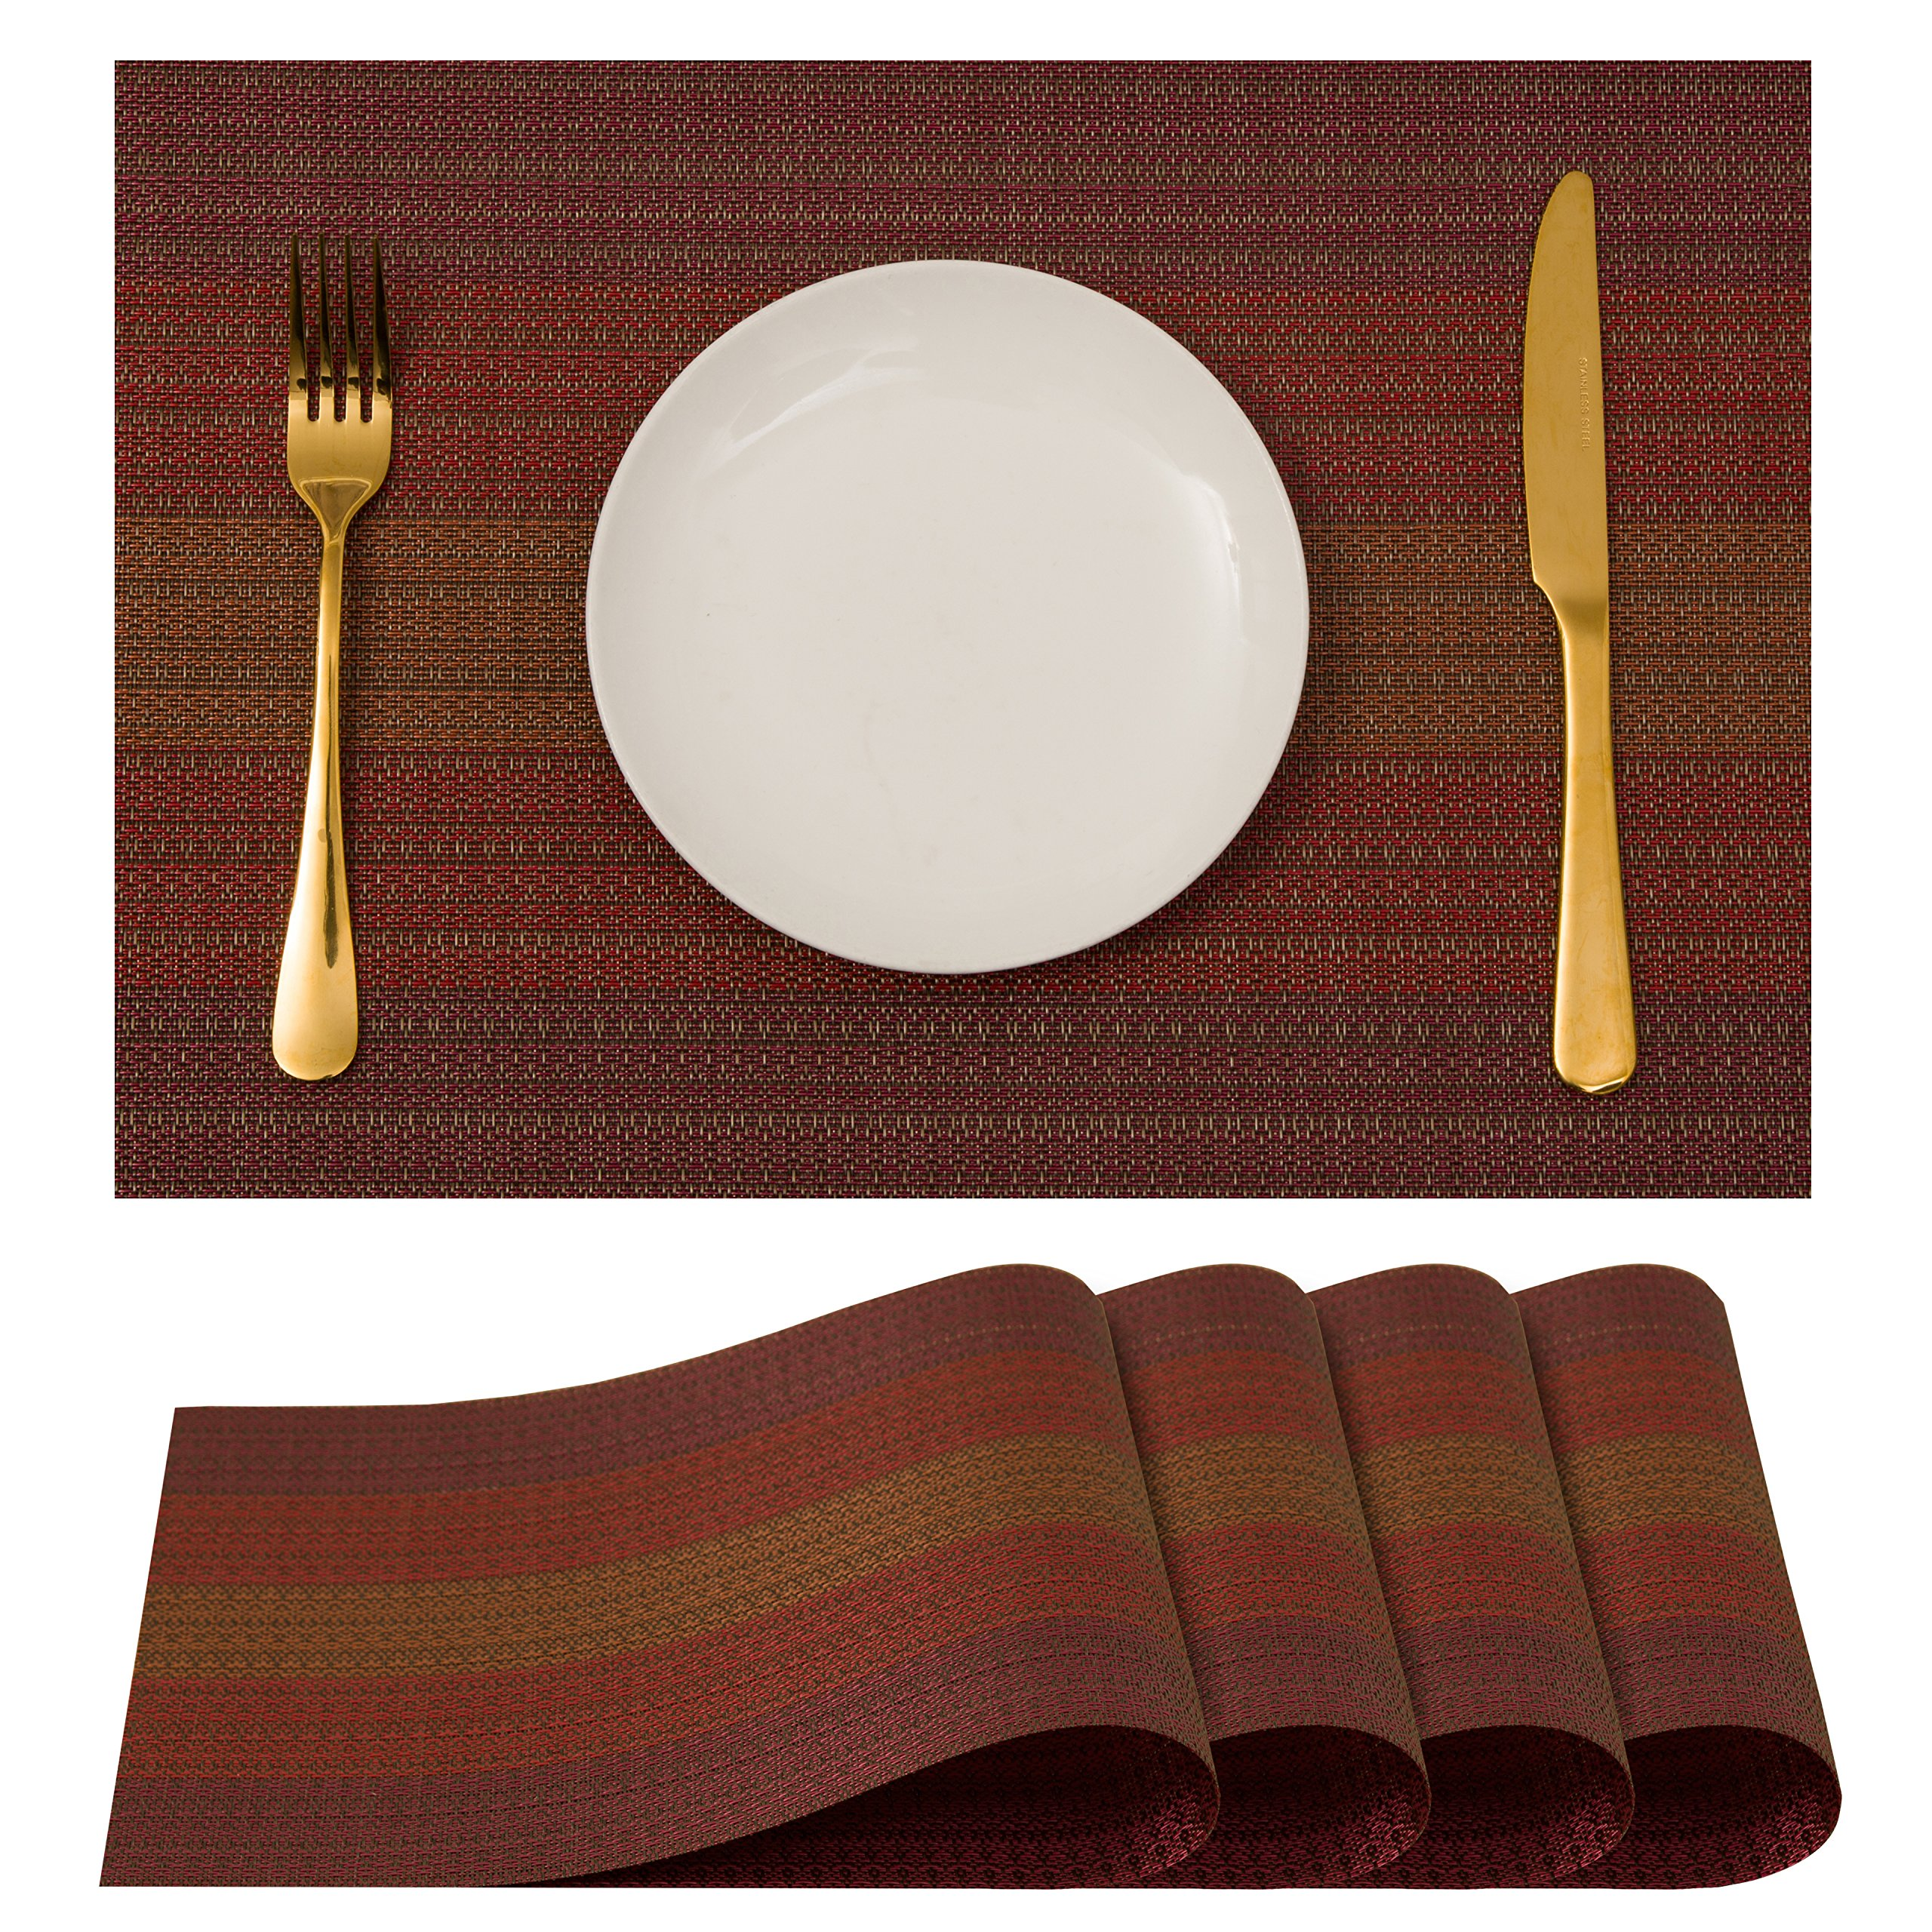 Plain Jane Placemats, Table Mats Non-Slip Washable Place Mats, Heat Resistant Kitchen Tablemats for Dining Table, Placemat Set of 4, Red.